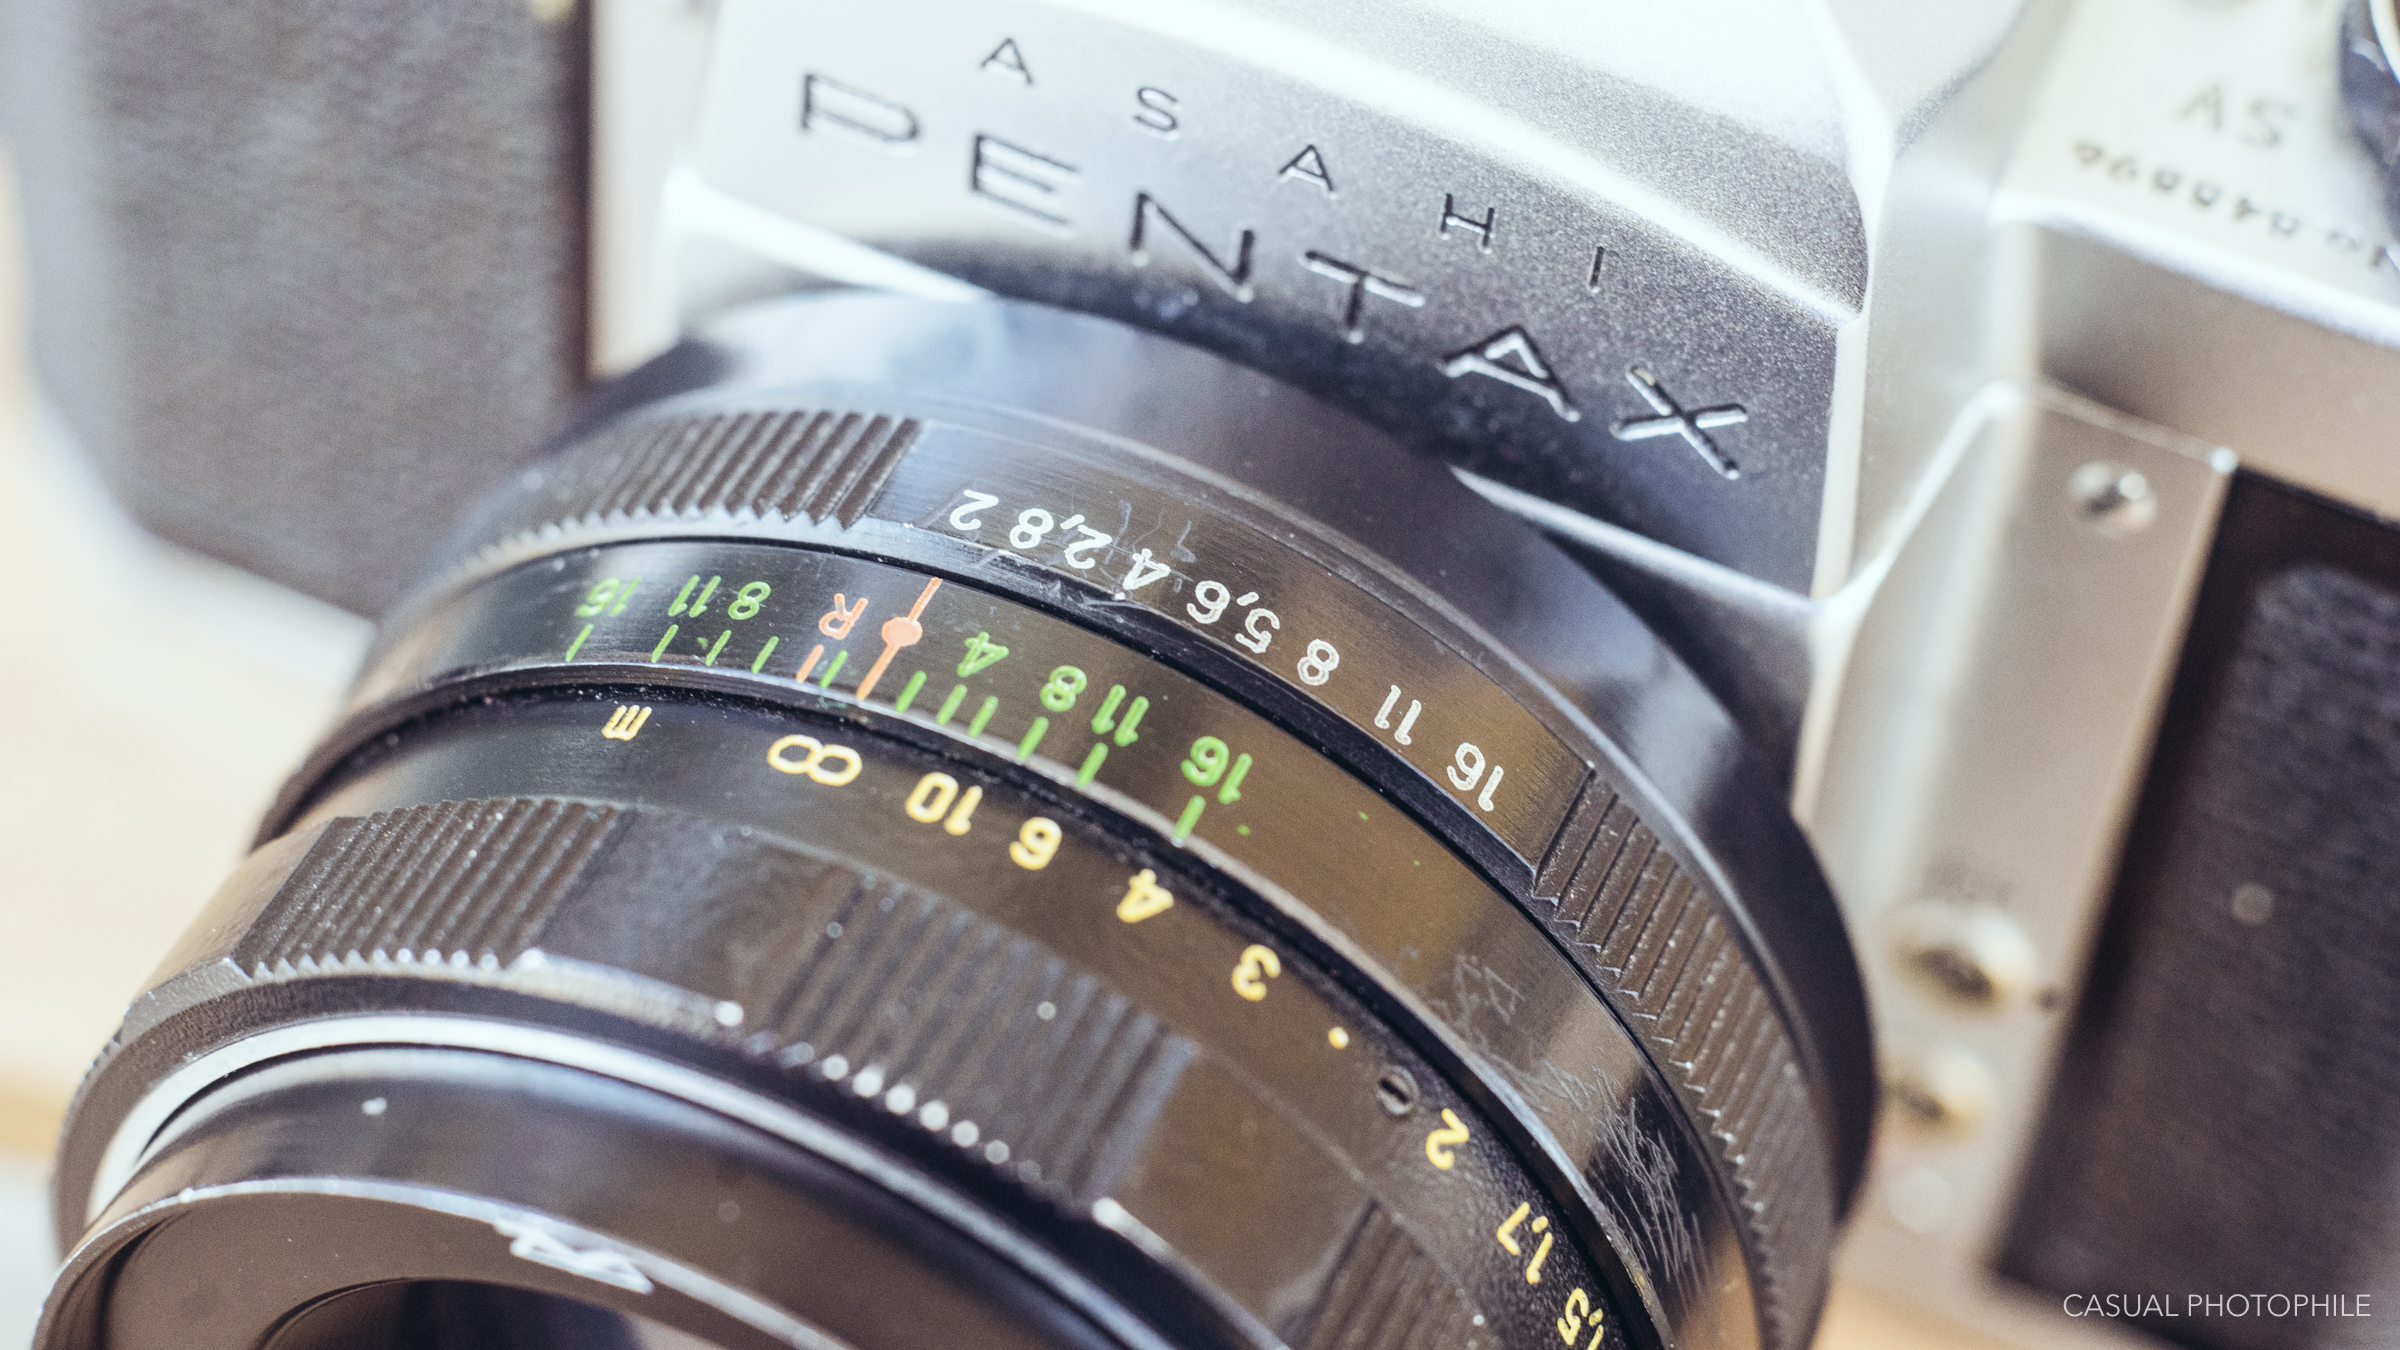 Helios 44M 58mm F/2 Lens Review - Another Round of Russian